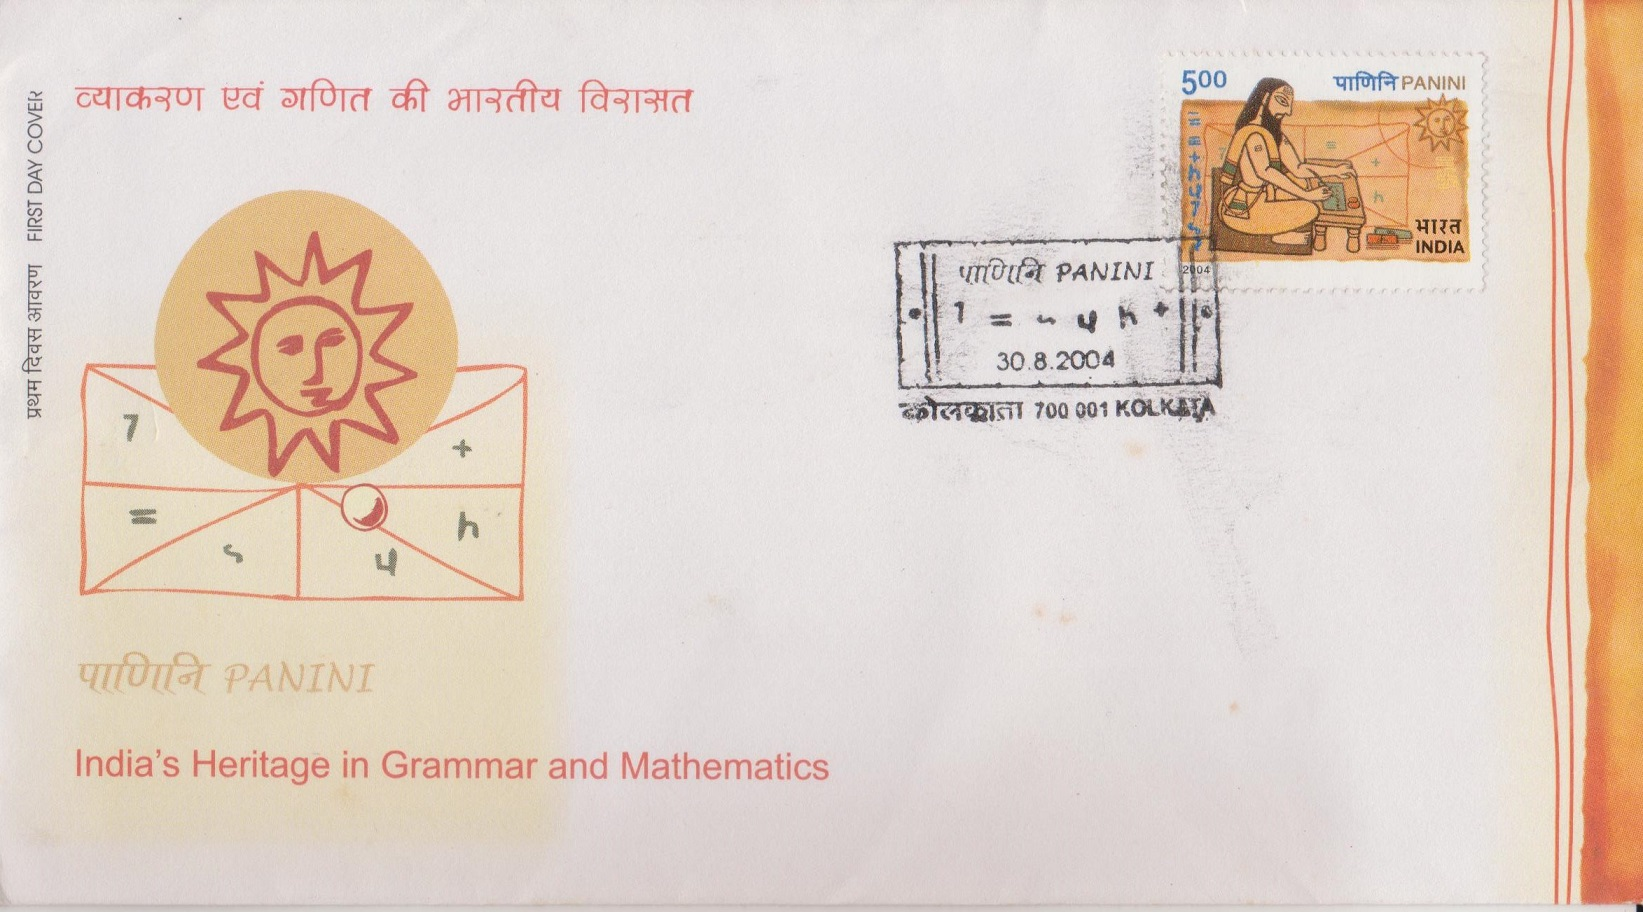 India's Heritage in Grammar and Mathematics